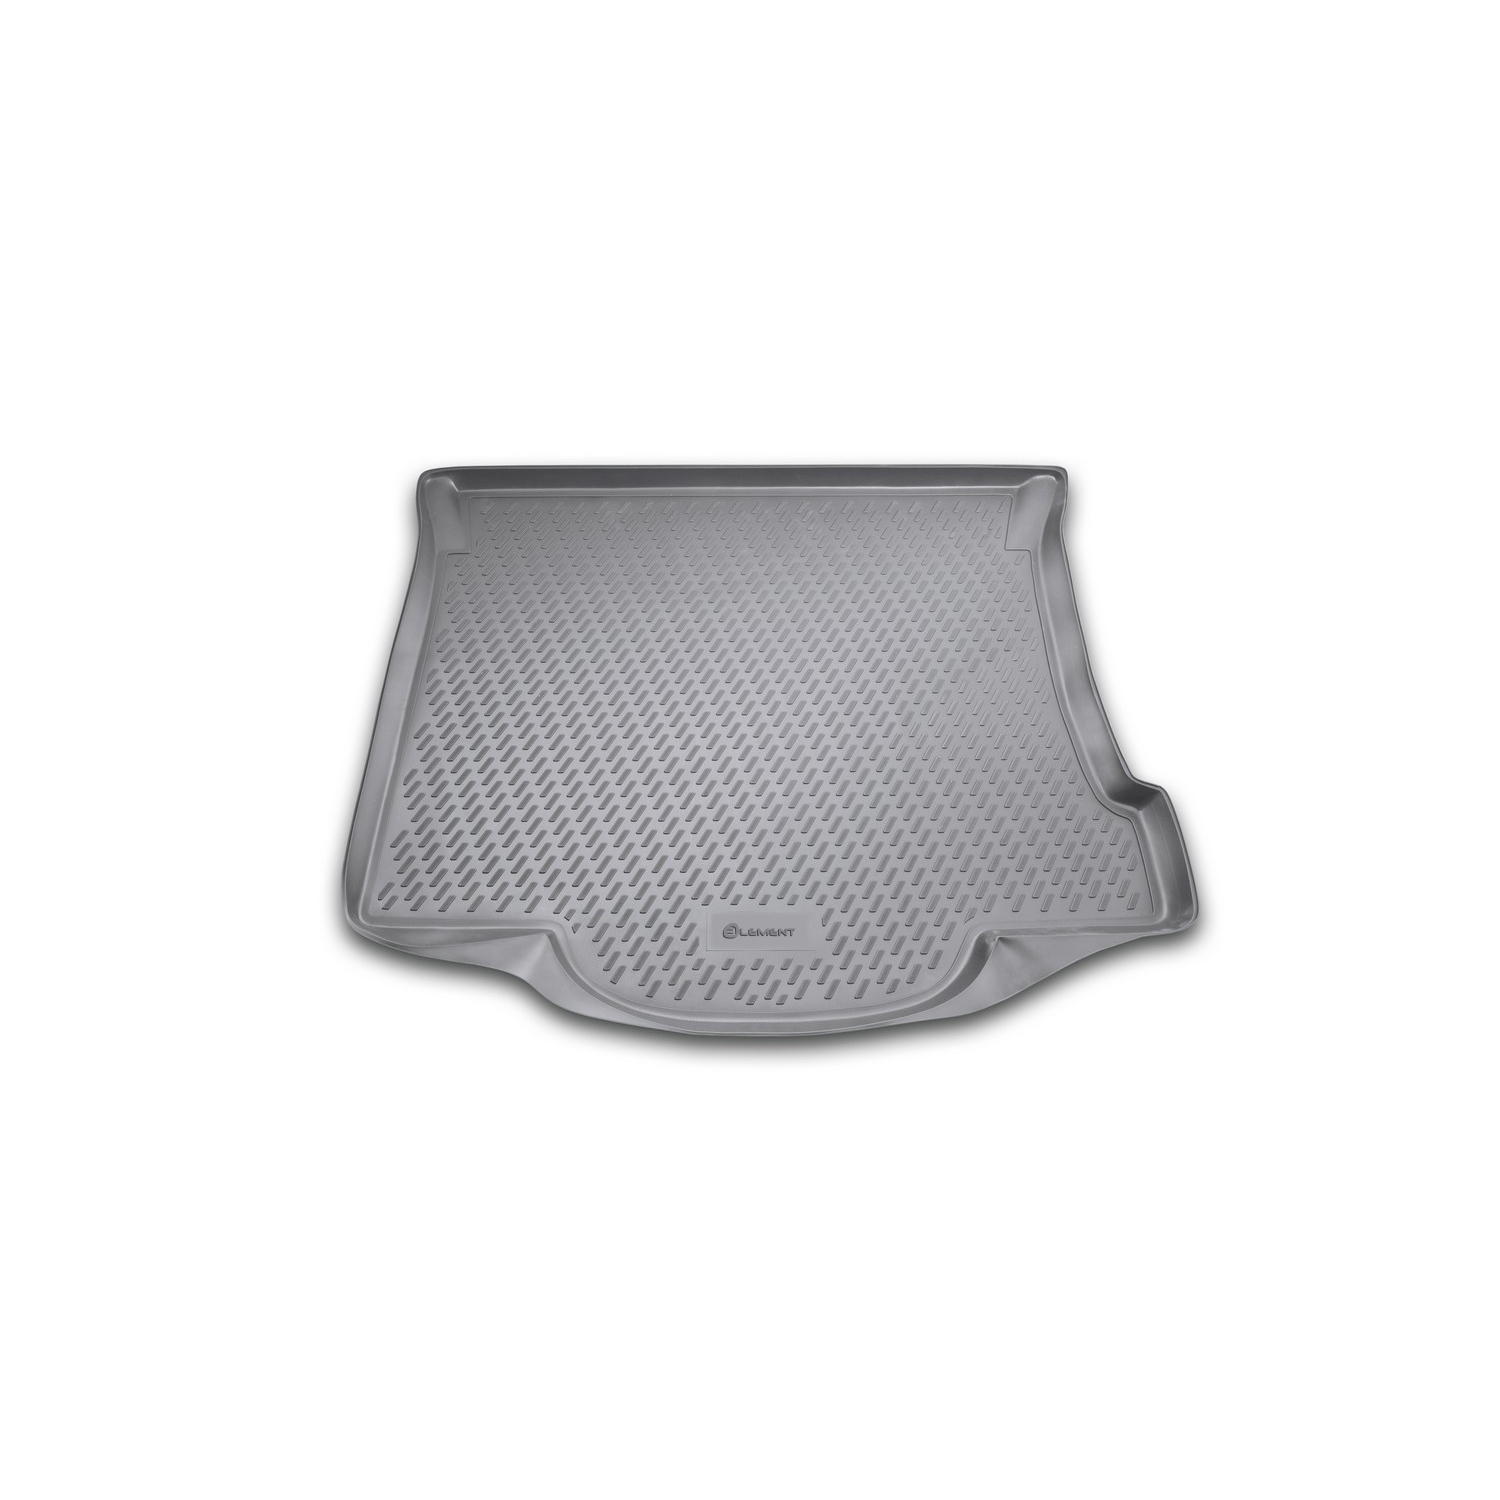 Trunk Mat For MAZDA 3 2003-2009, ETS. CARMZD00002